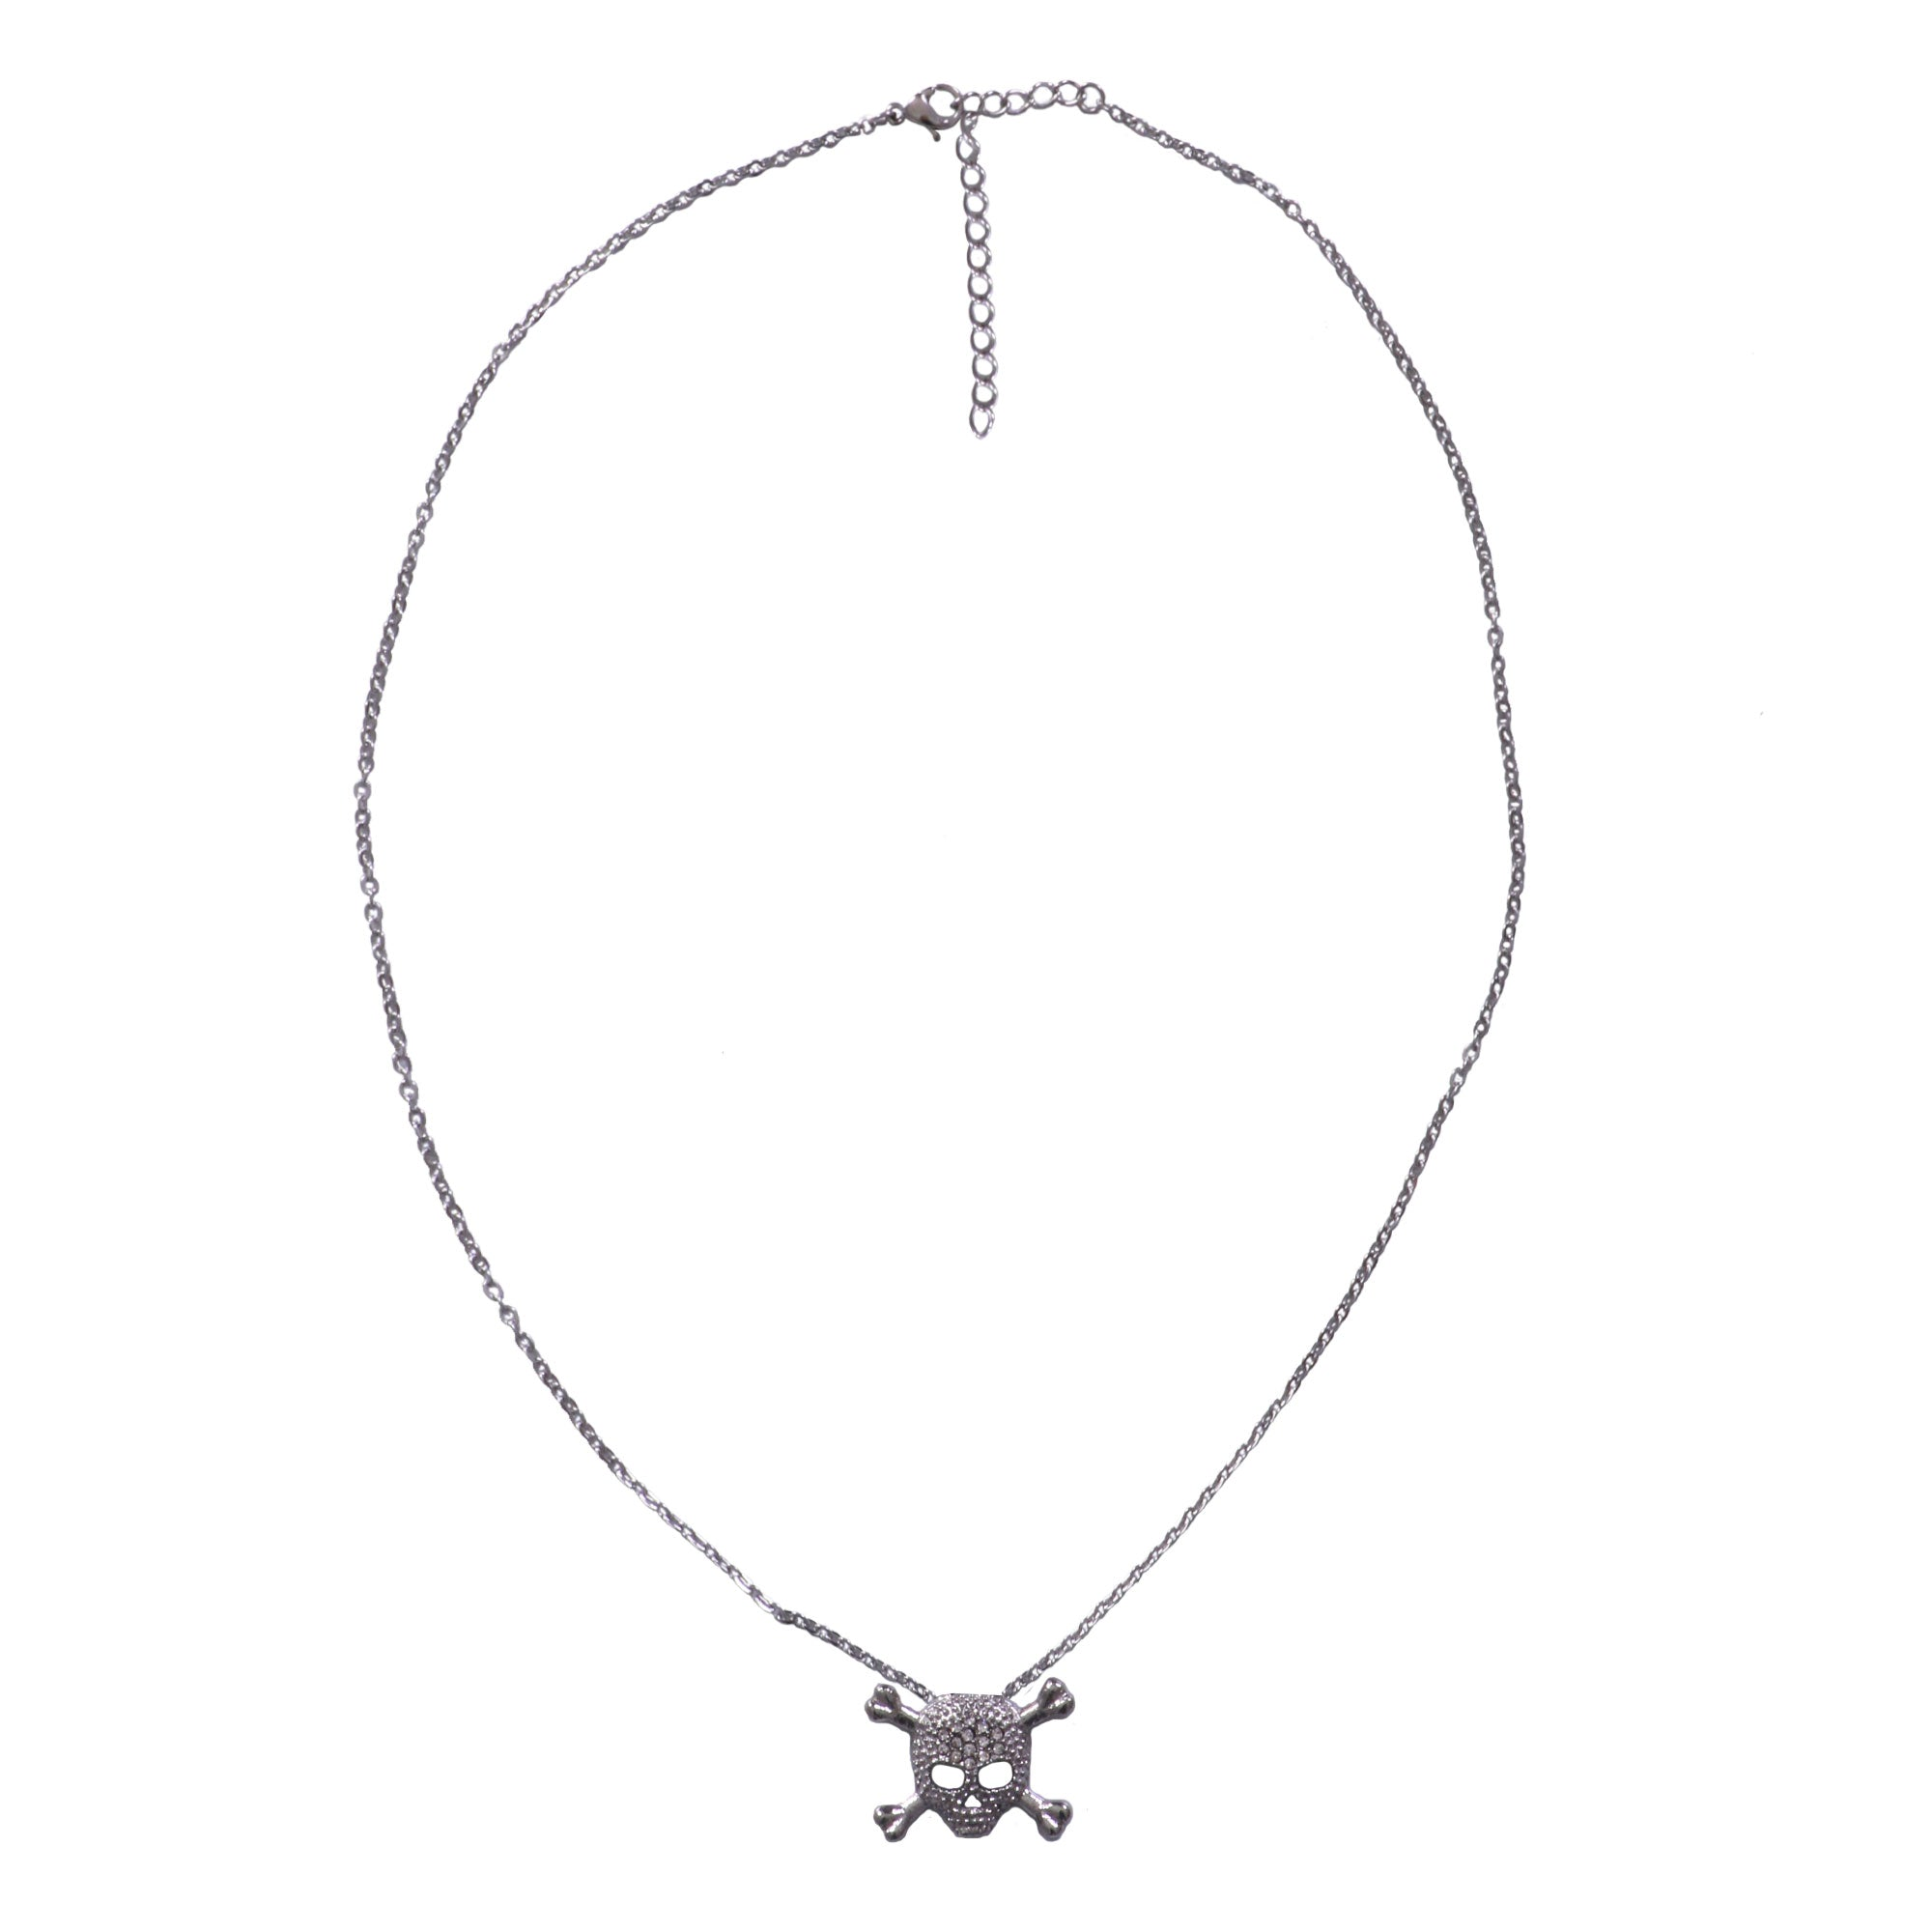 Hot Leathers Skull and Cross Bones Necklace